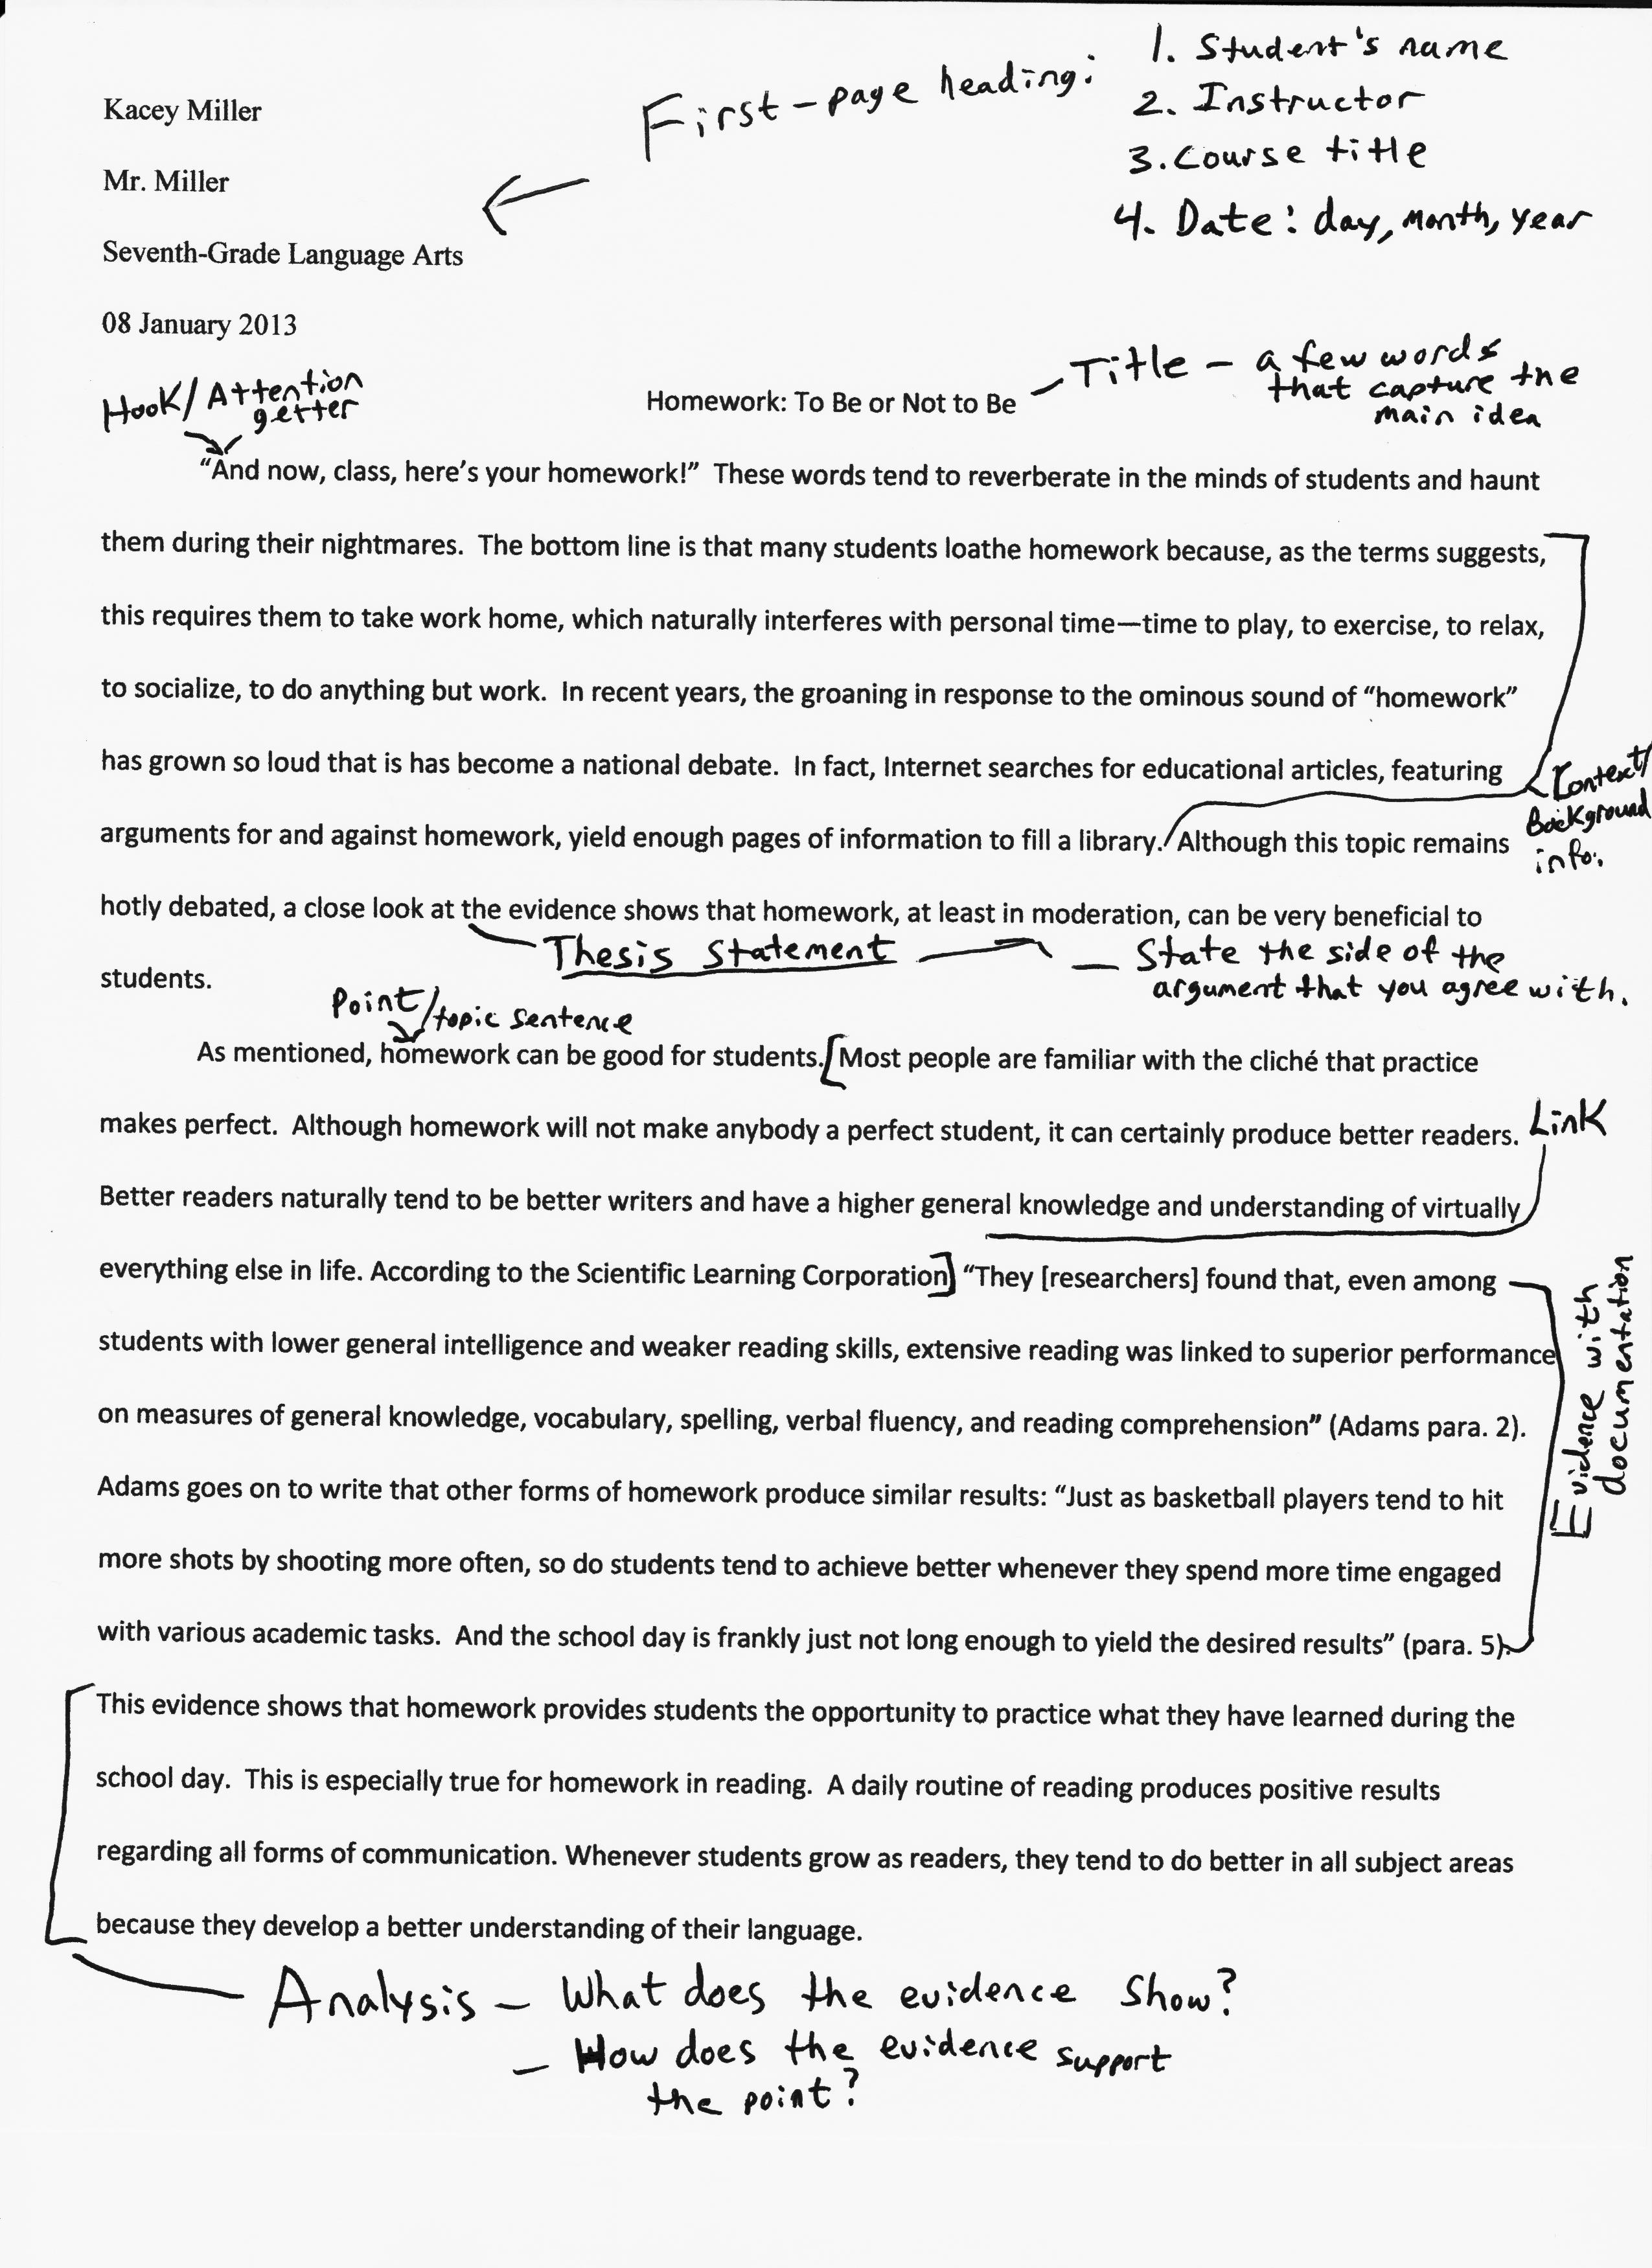 012 Essay Example Mentor20argument20essay20page20120001 Pro Death Fearsome Penalty Con Debate Argumentative Outline Full